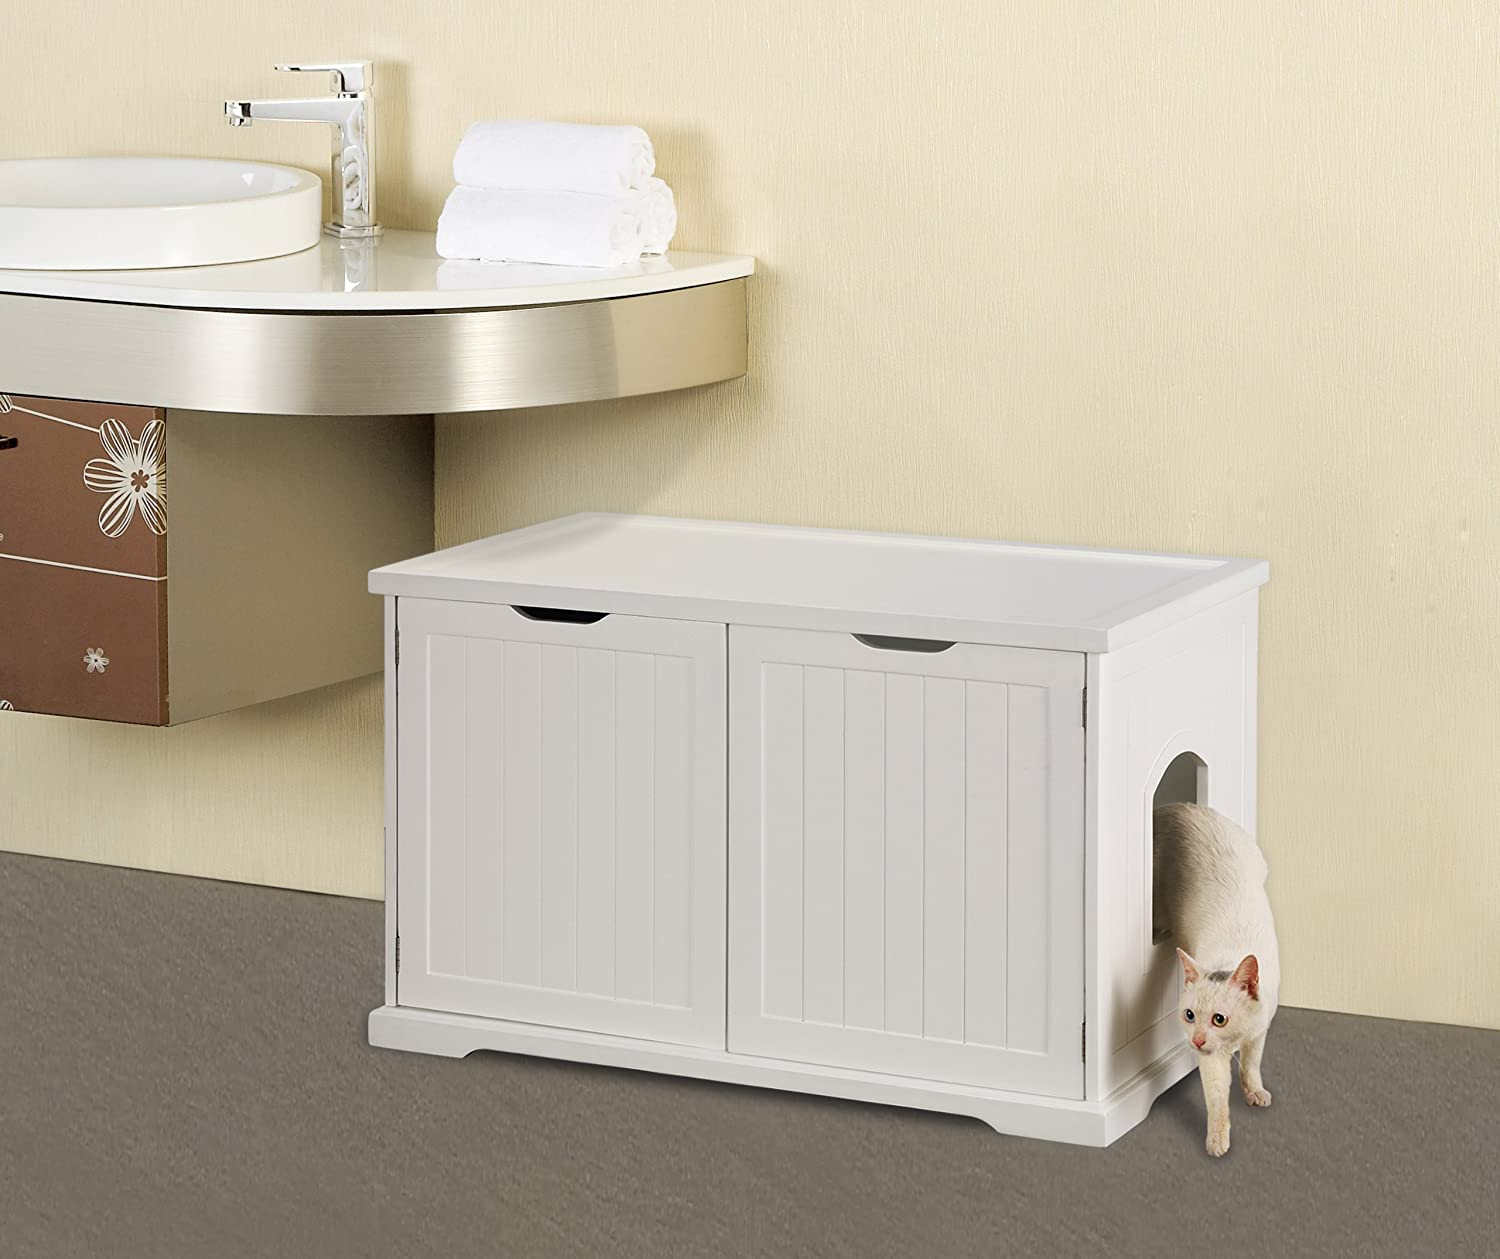 Amazon.com : Merry Products Cat Washroom Bench, White : Cat Houses And  Condos : Pet Supplies